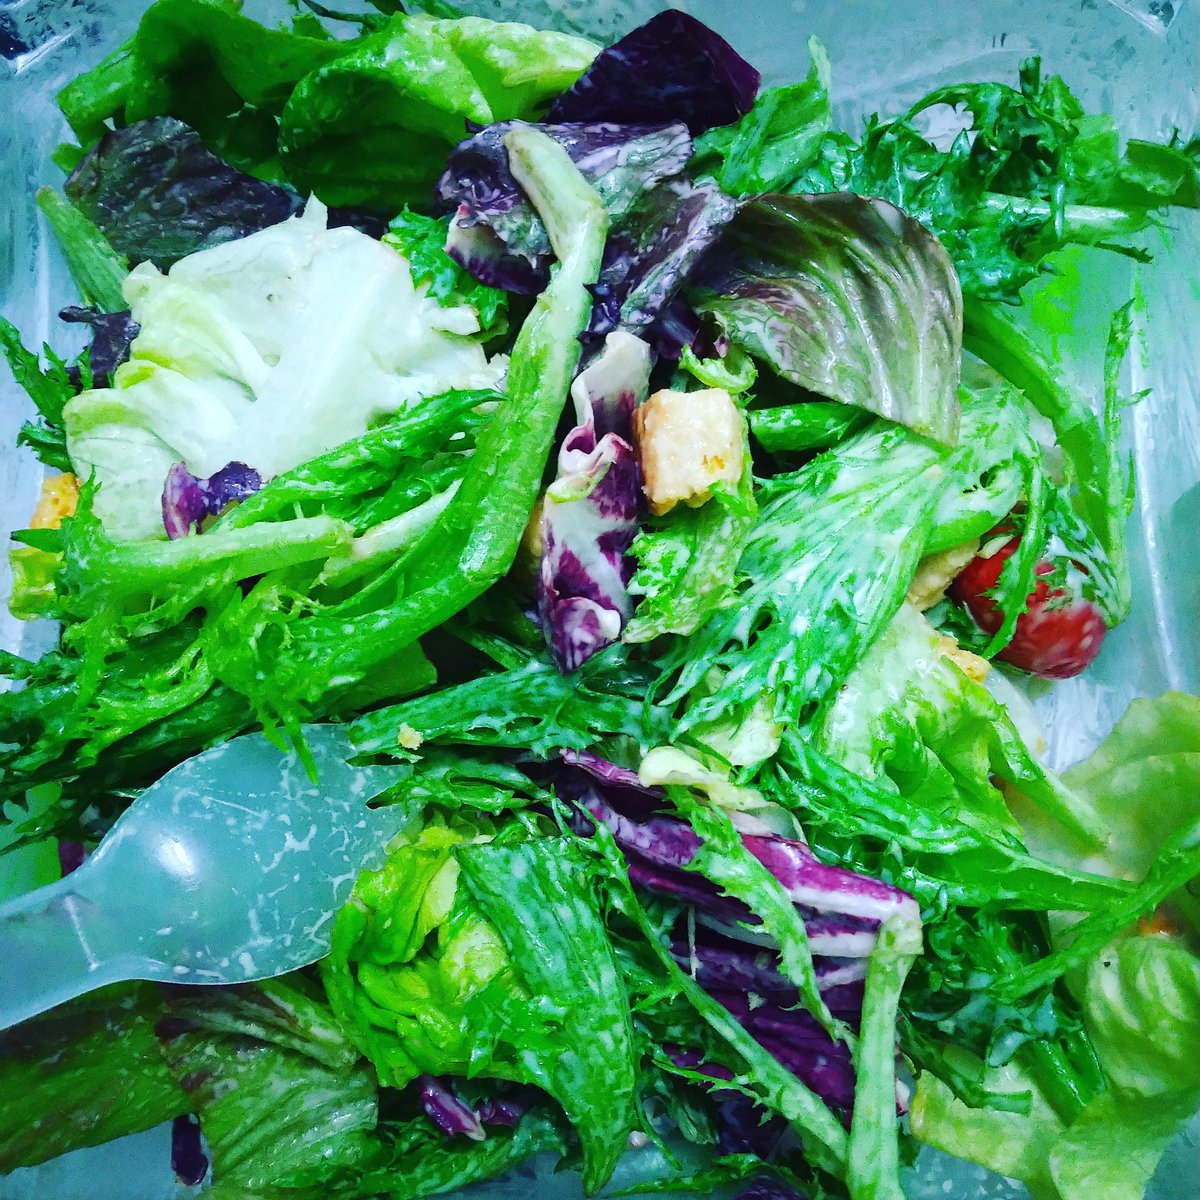 Dinner anyone? Healthy food and healthy diet. #Garden #Saladpic.twitter.com/nYfCKnPa8v